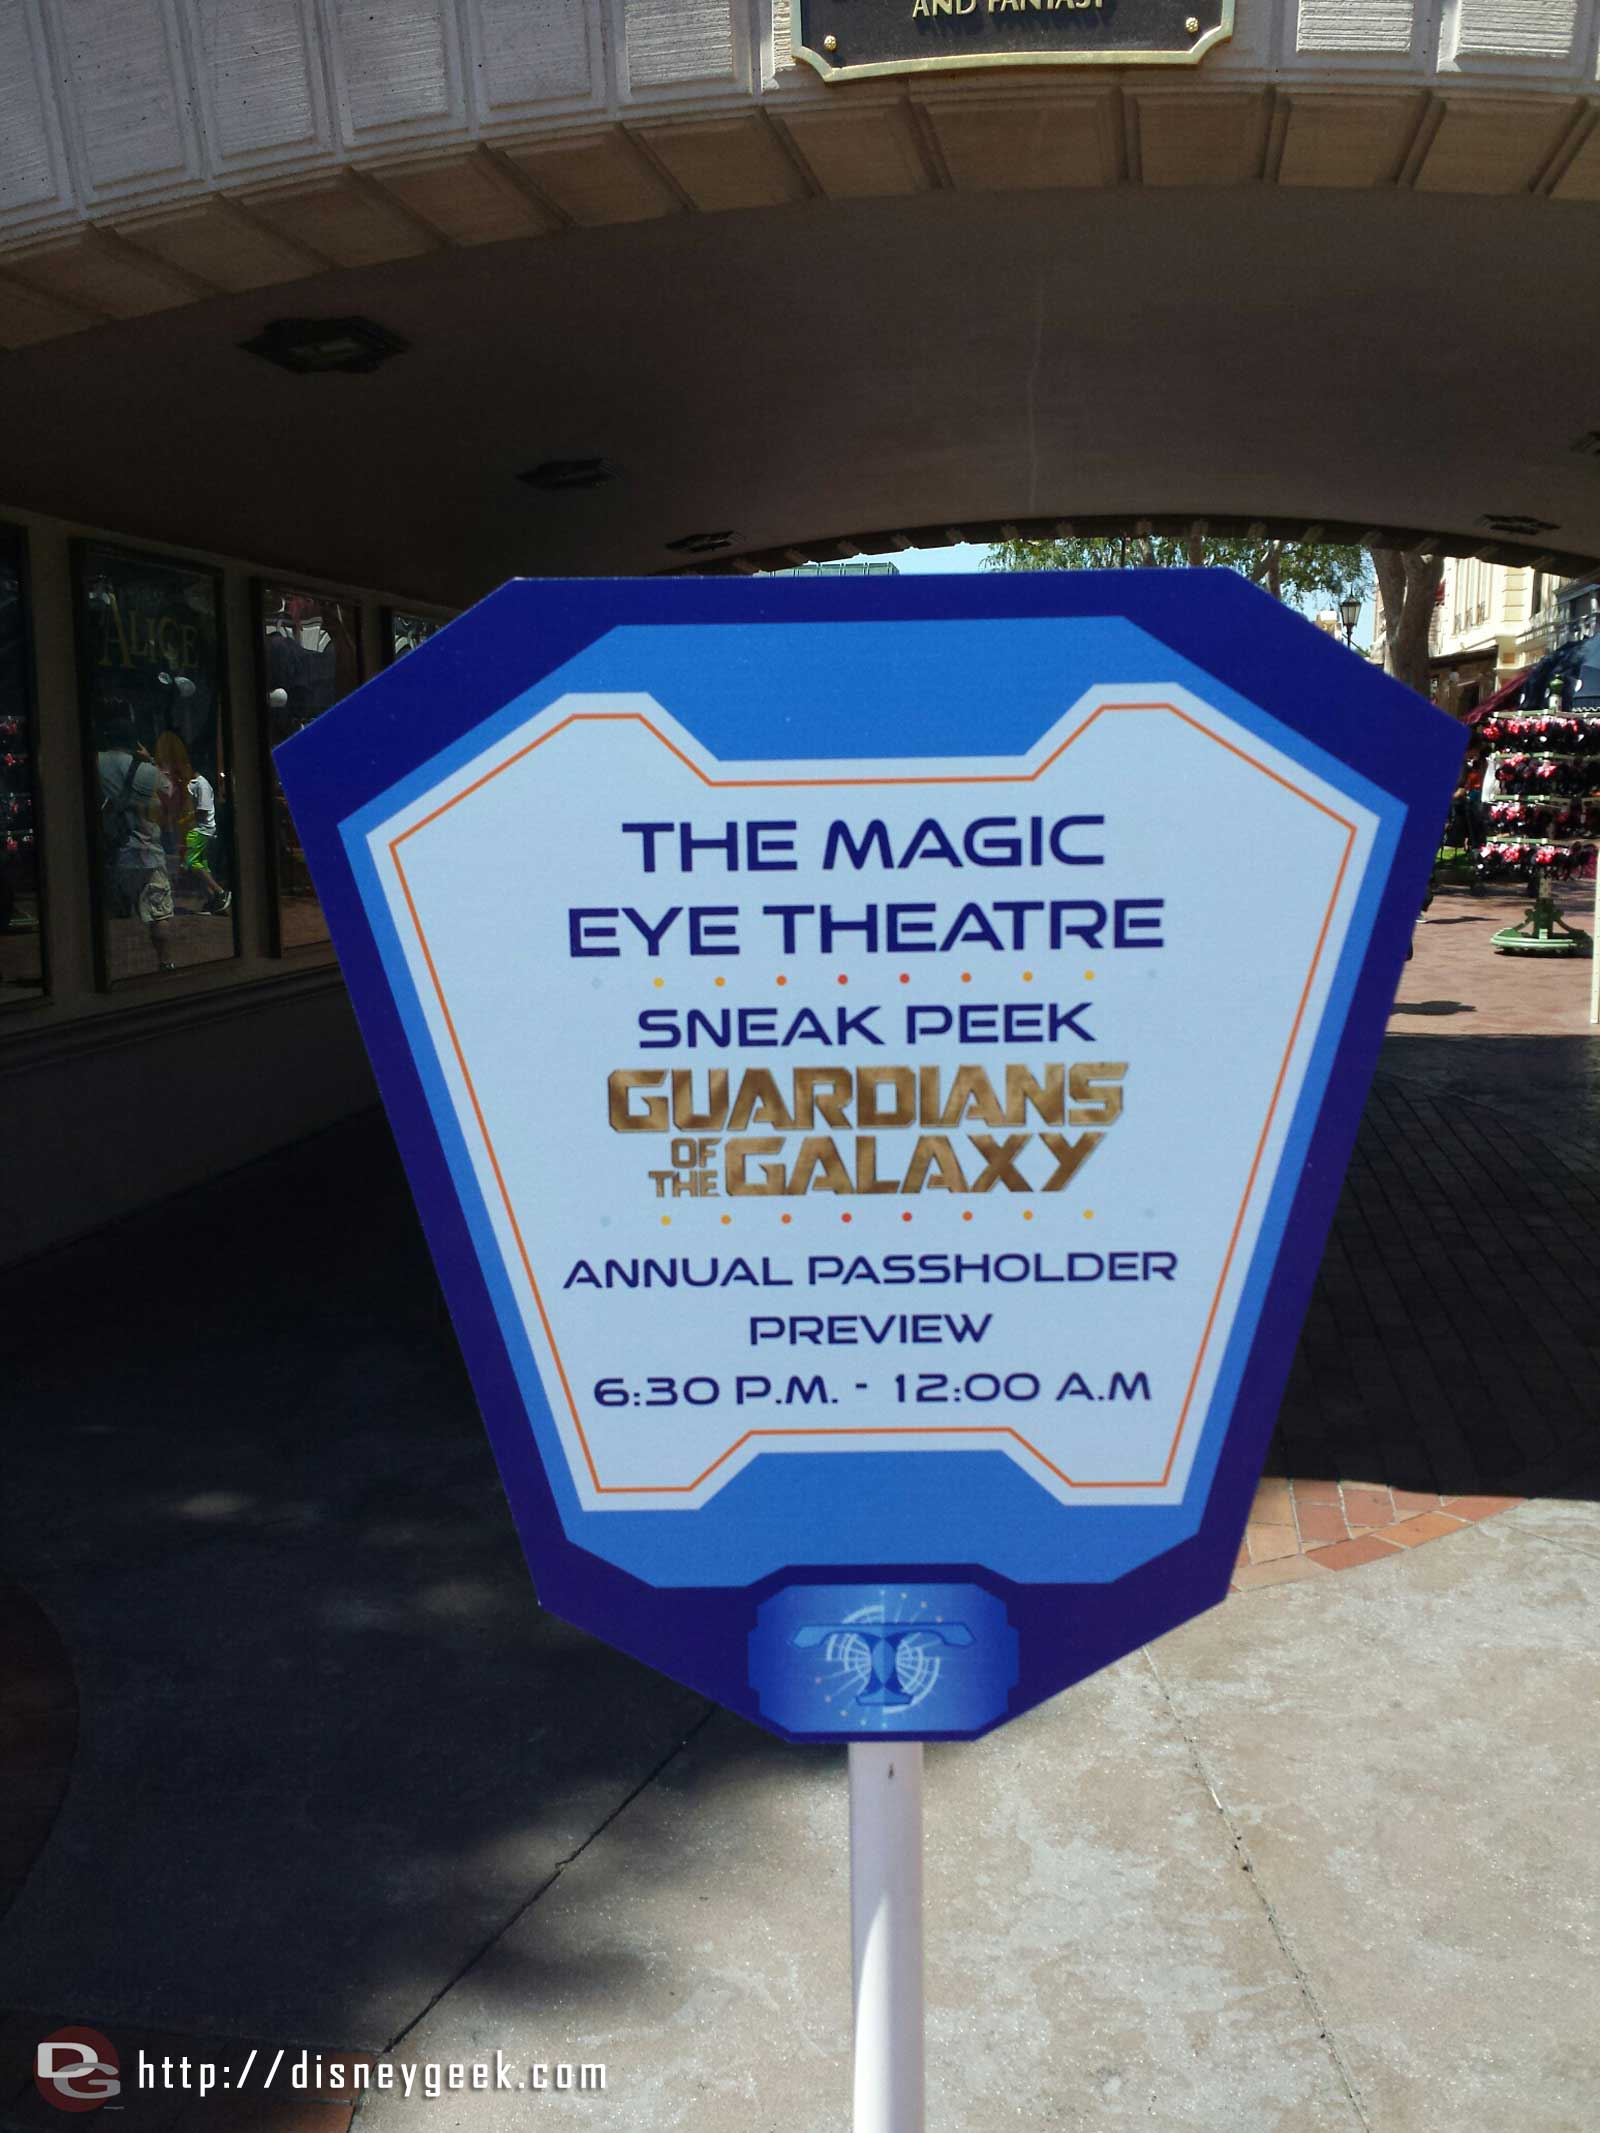 This evening there is a Disneyland Annual Passholder preview of the sneak peek of Guardians of the Galaxy